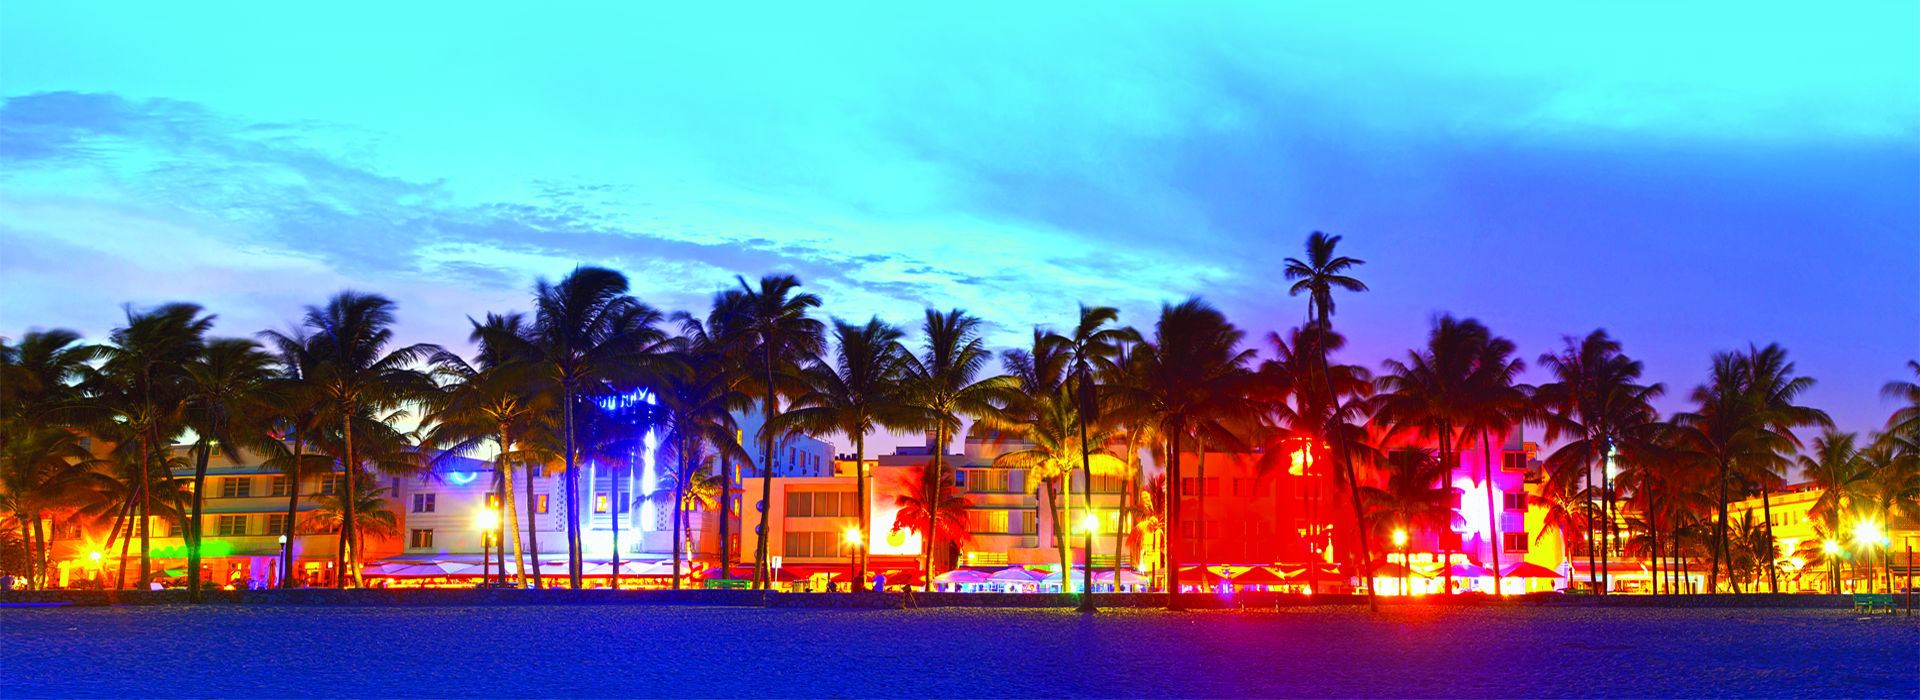 Art Deco Miami Beach Png